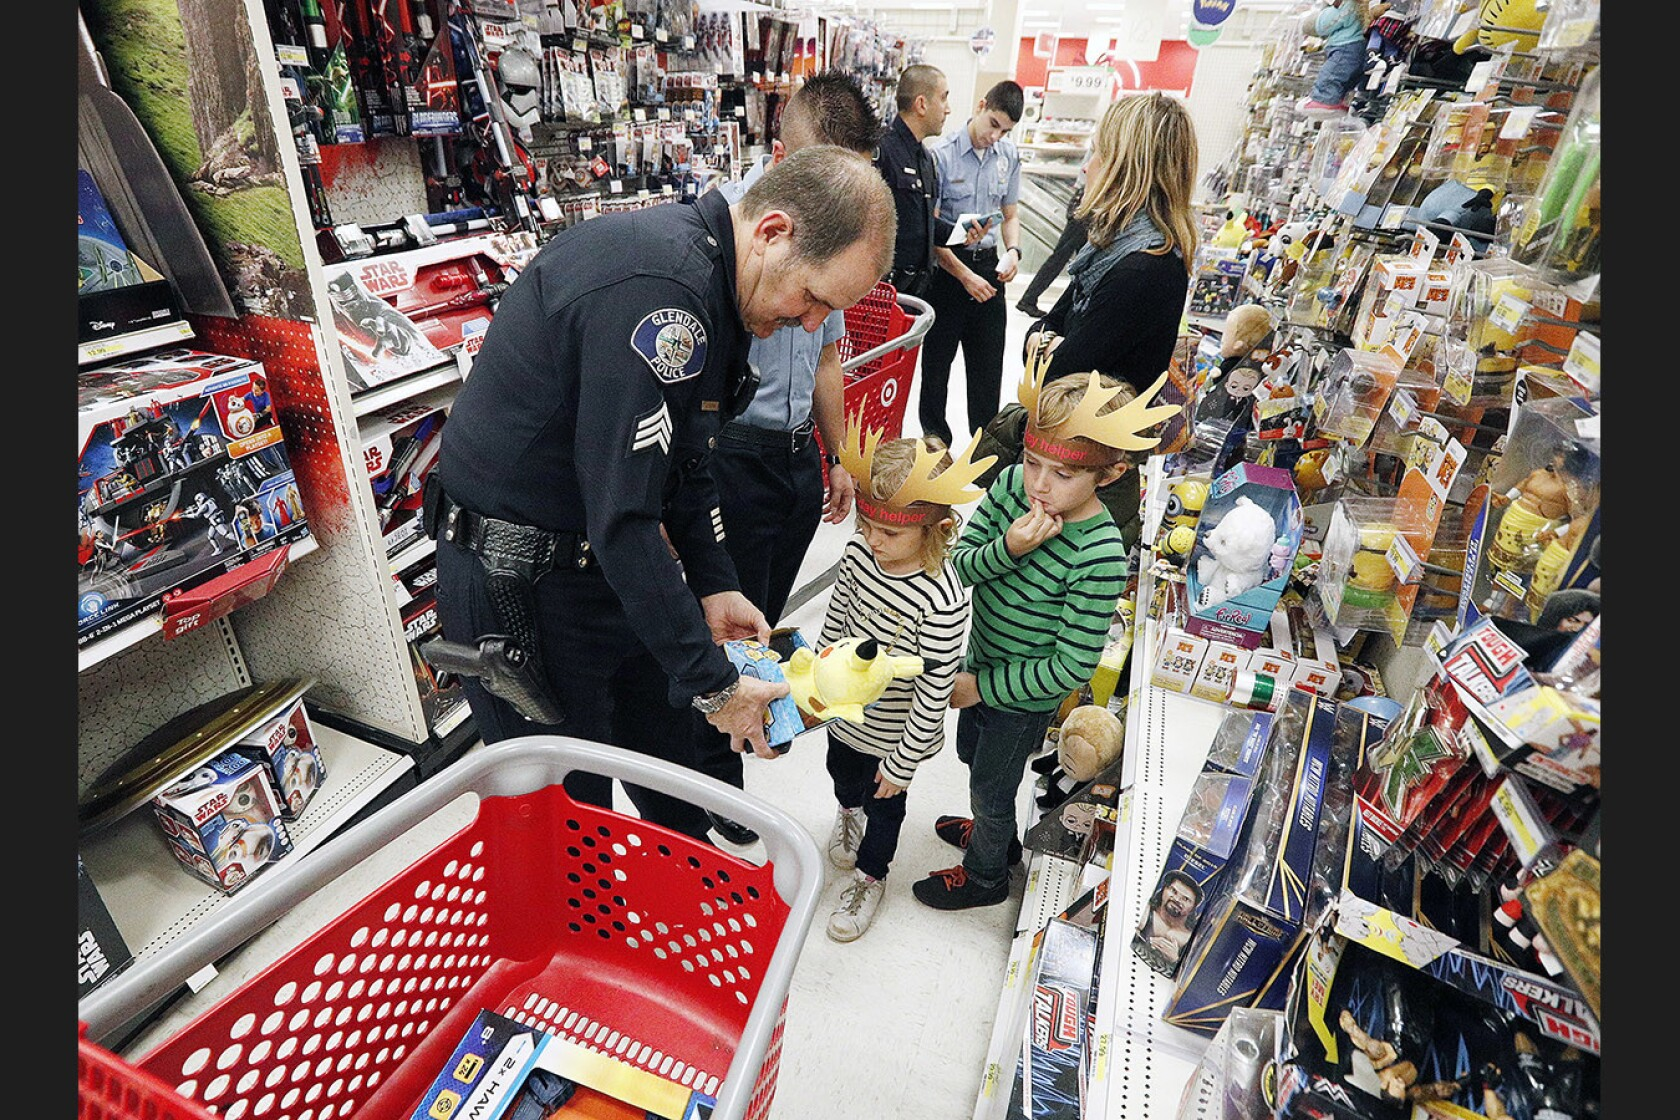 Shop with a Cop brings early holiday cheer to Glendale